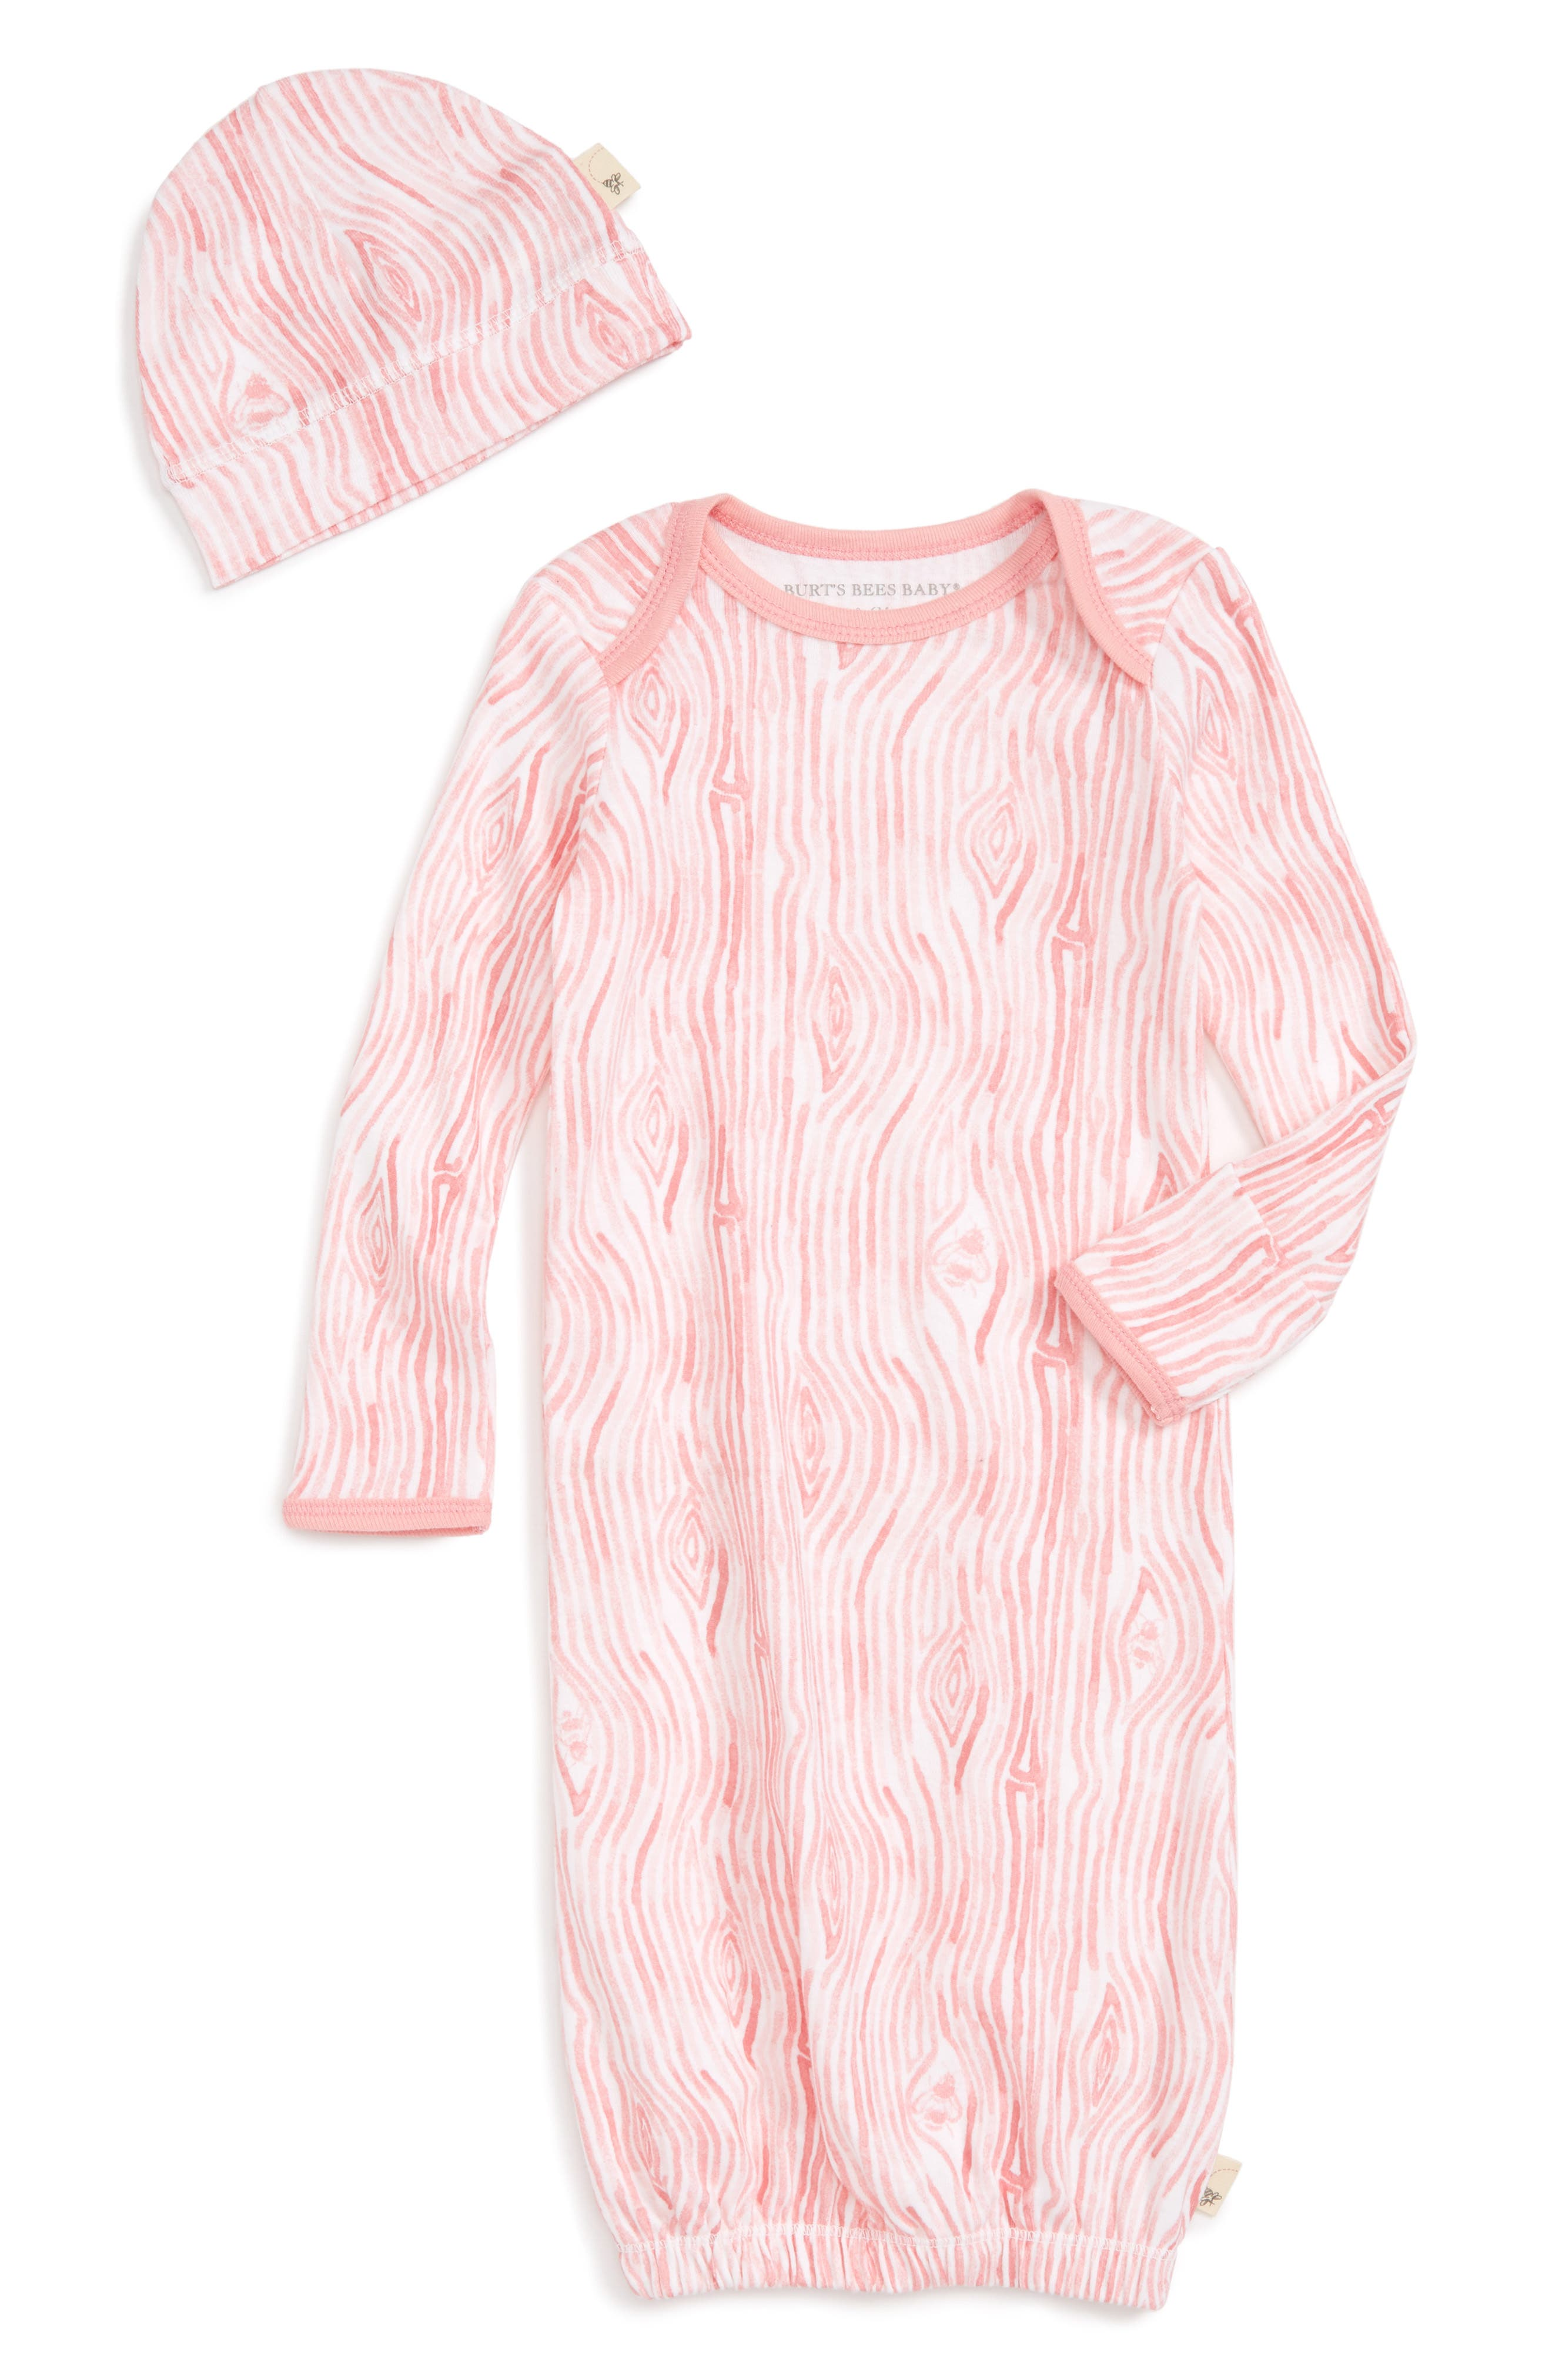 BURTS BEES BABY Watercolor Organic Cotton Gown & Hat Set